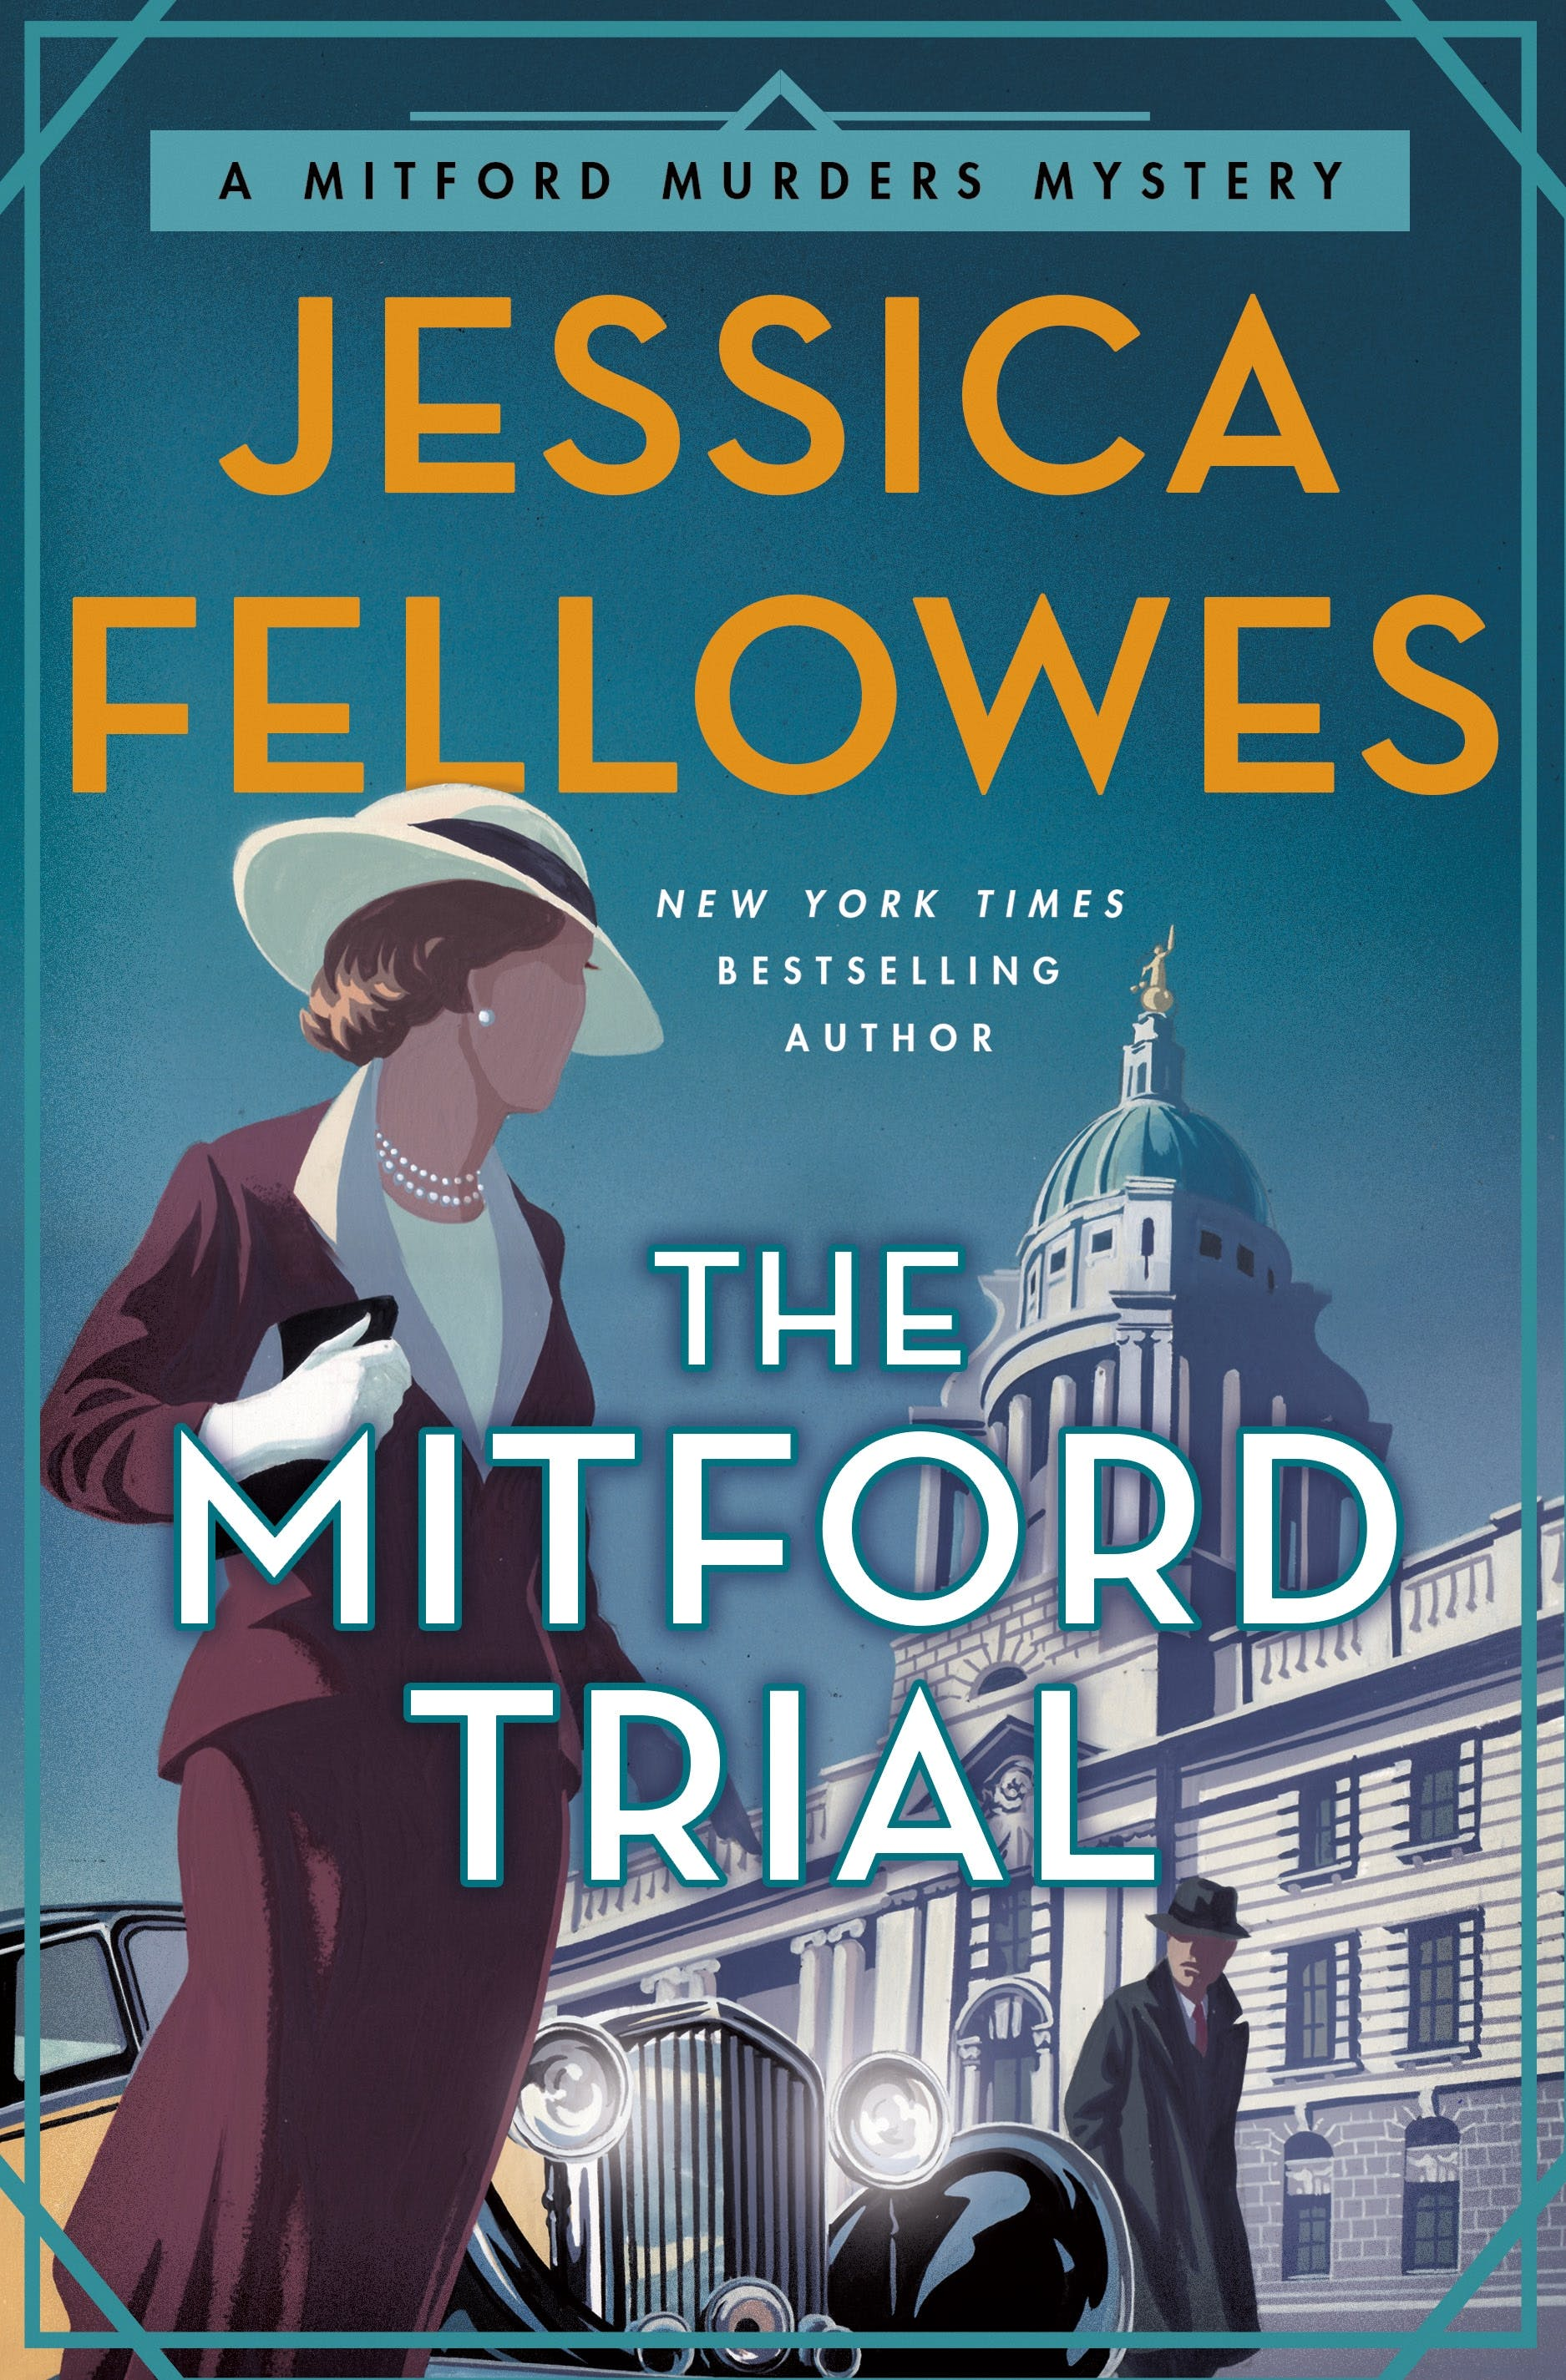 Image of The Mitford Trial